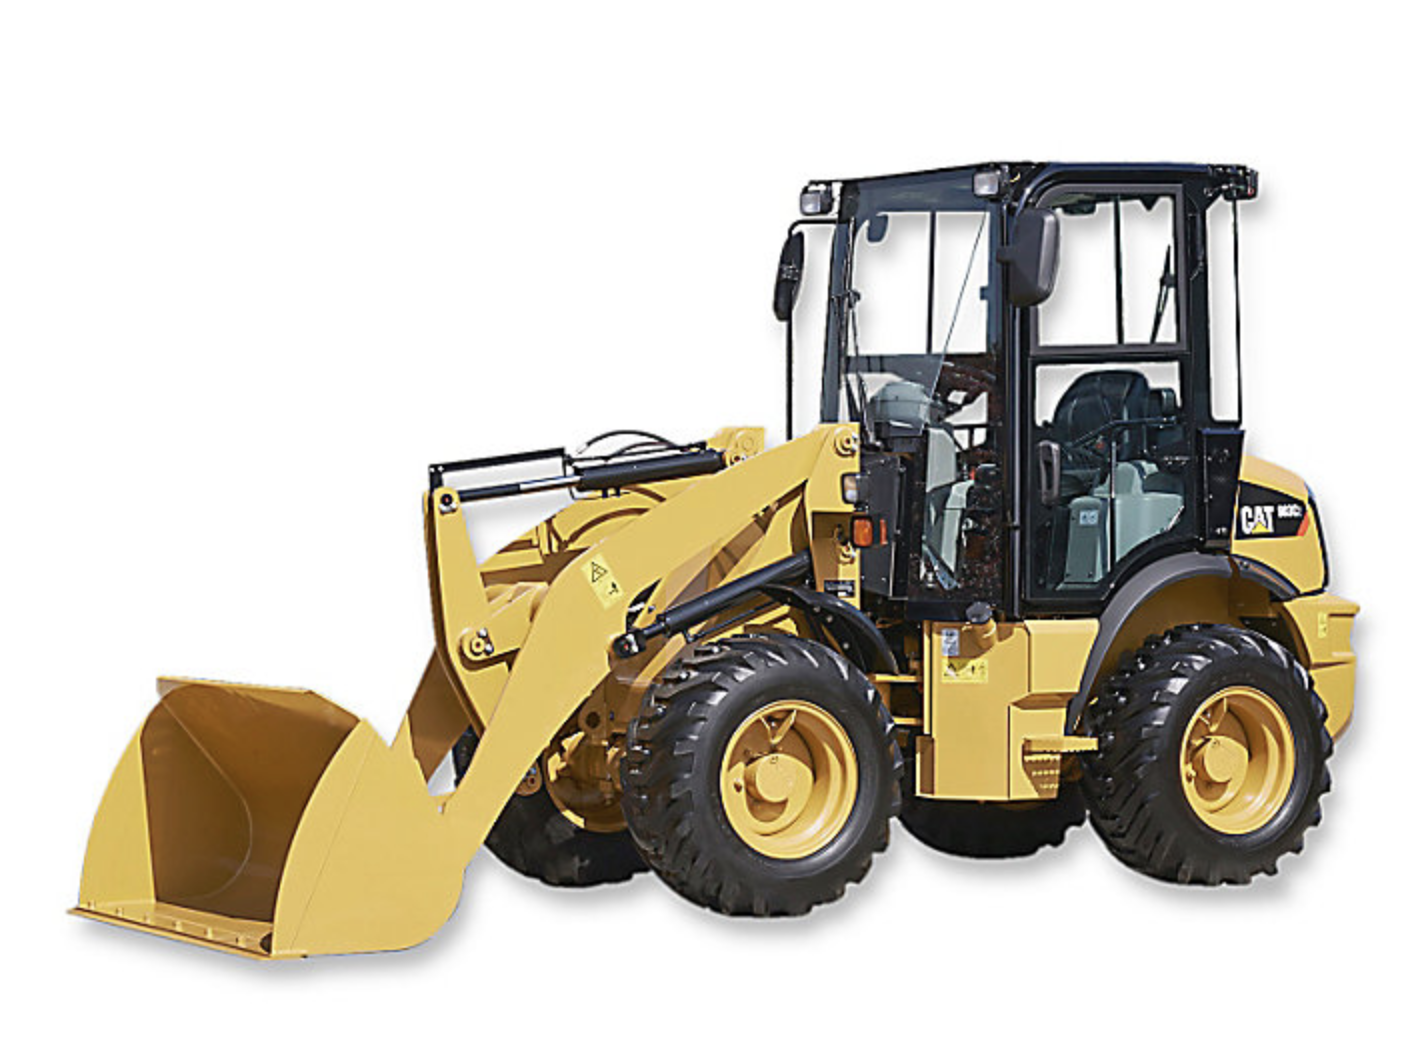 Repairing your Caterpillar Machinery with Used, Rebuilt, and